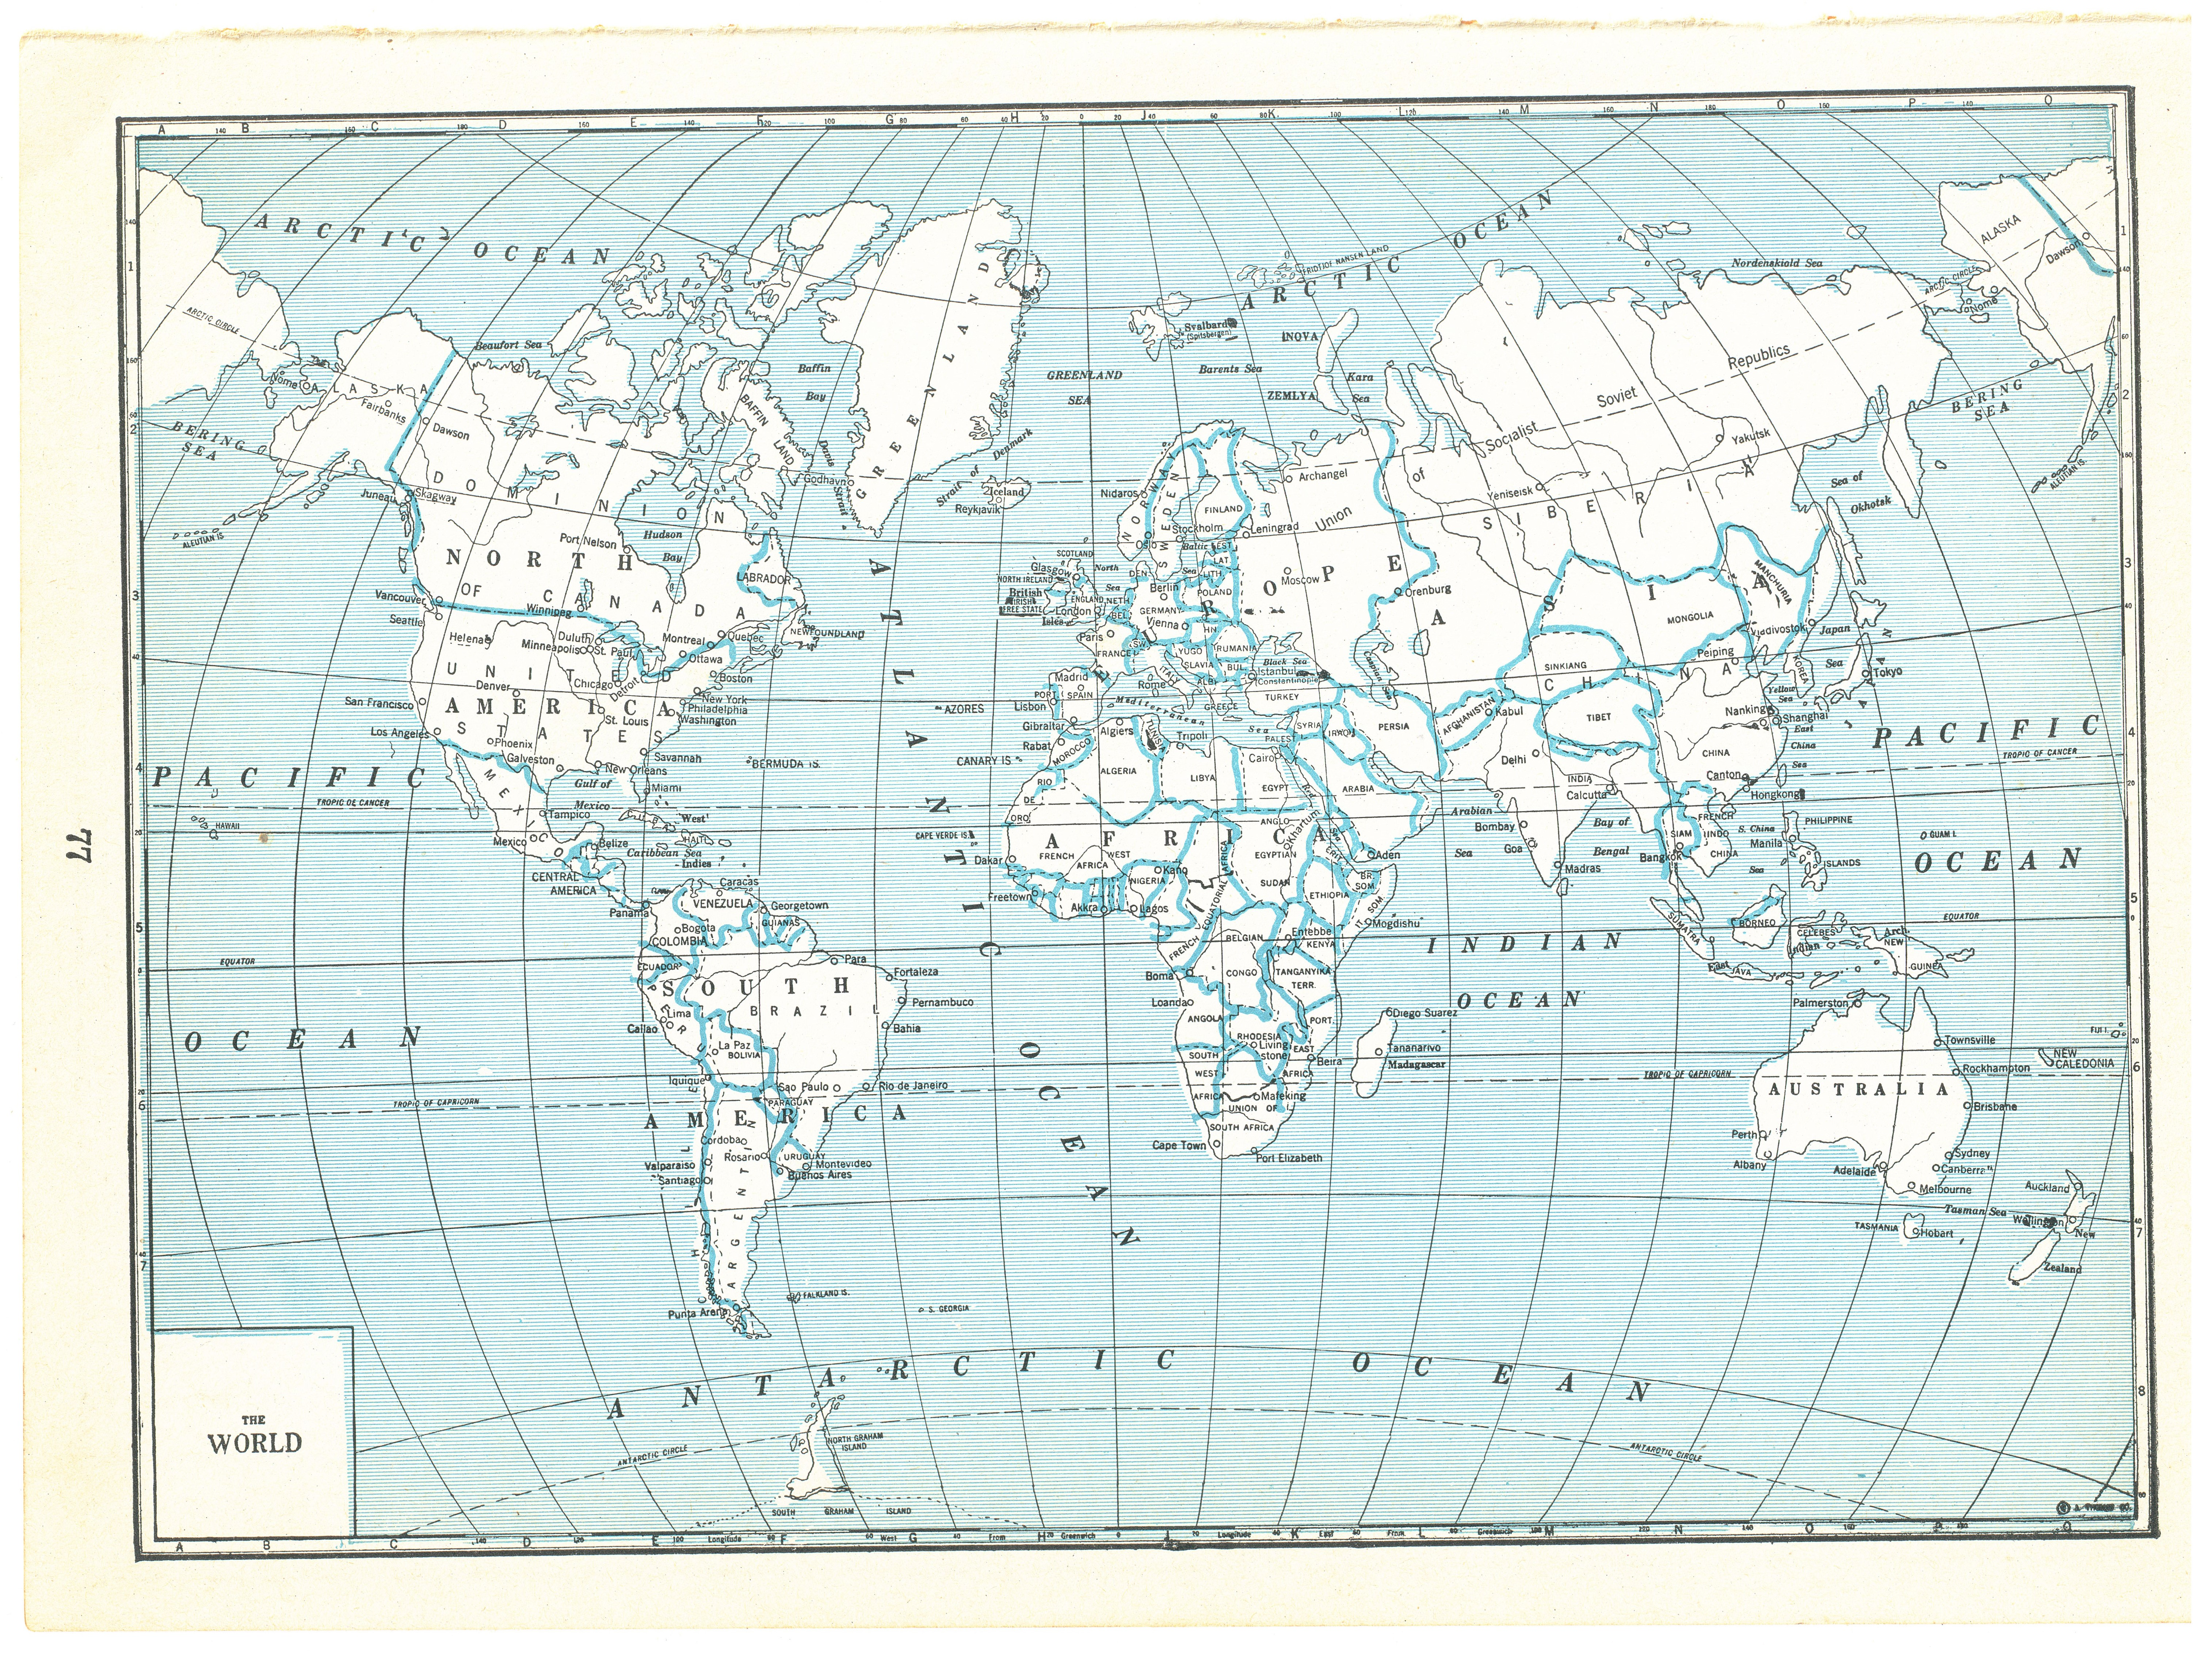 Details about 1940 Cappers Atlas Vintage Map Pages - World on one side and  North America on...